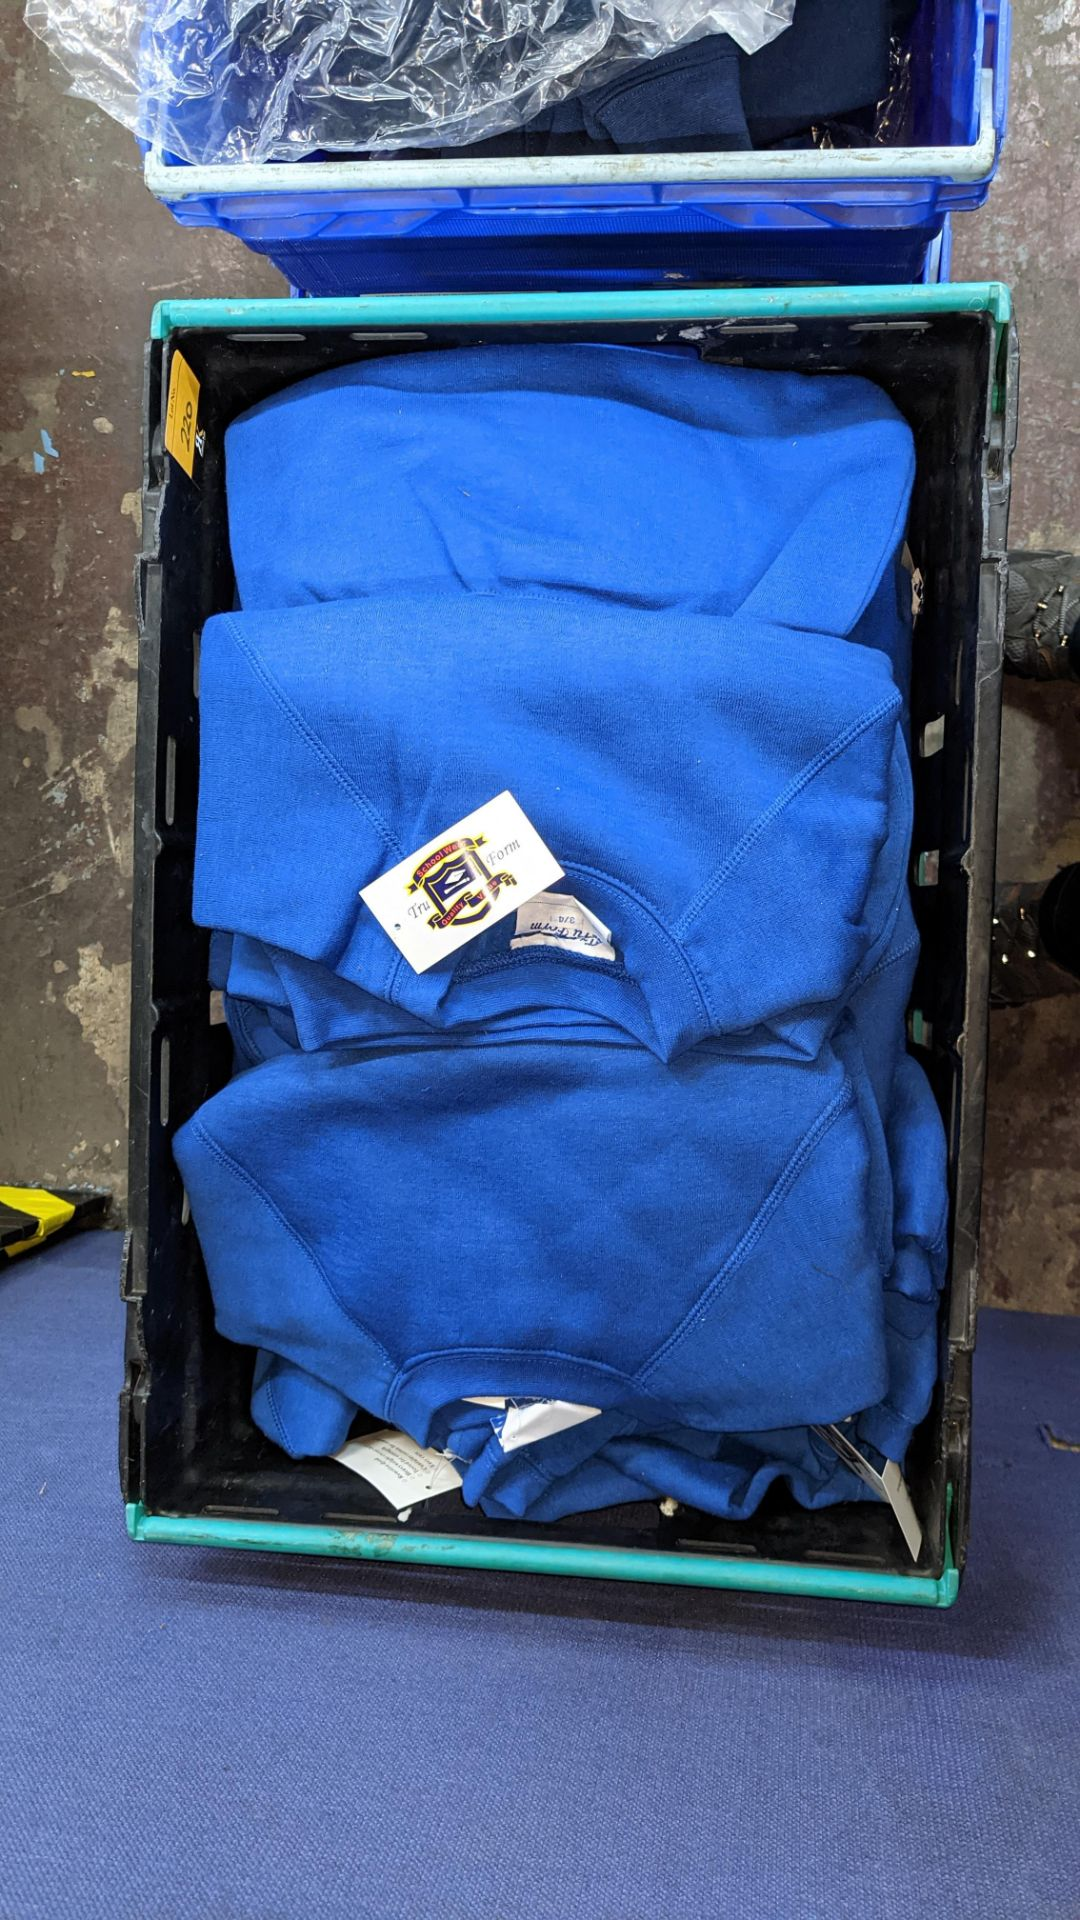 Approx 58 off children's blue sweatshirts - the contents of 3 crates. NB crates excluded - Image 6 of 6